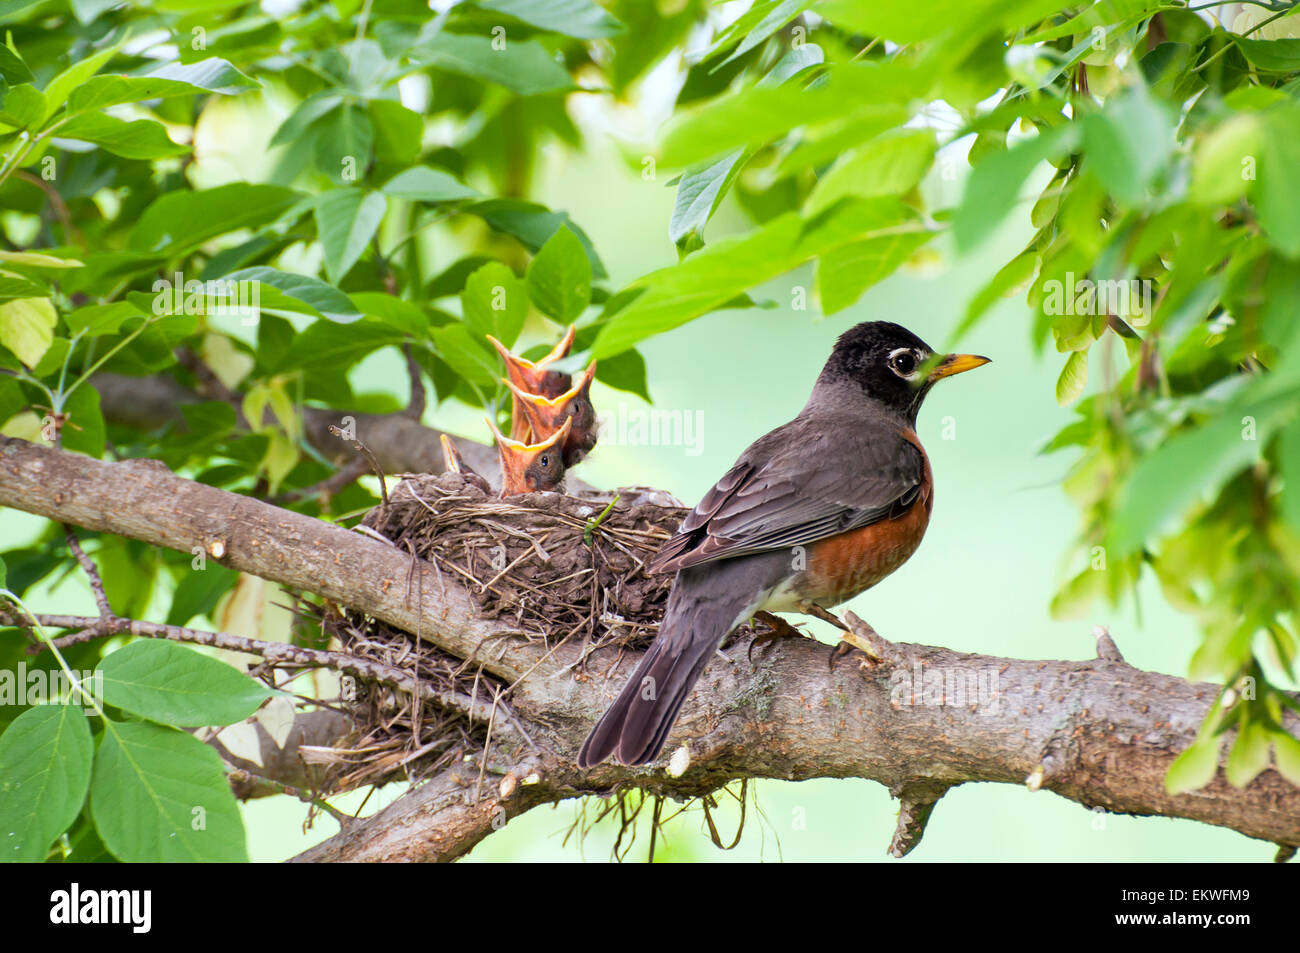 Robin bird on branch by nest of baby birds - Stock Image